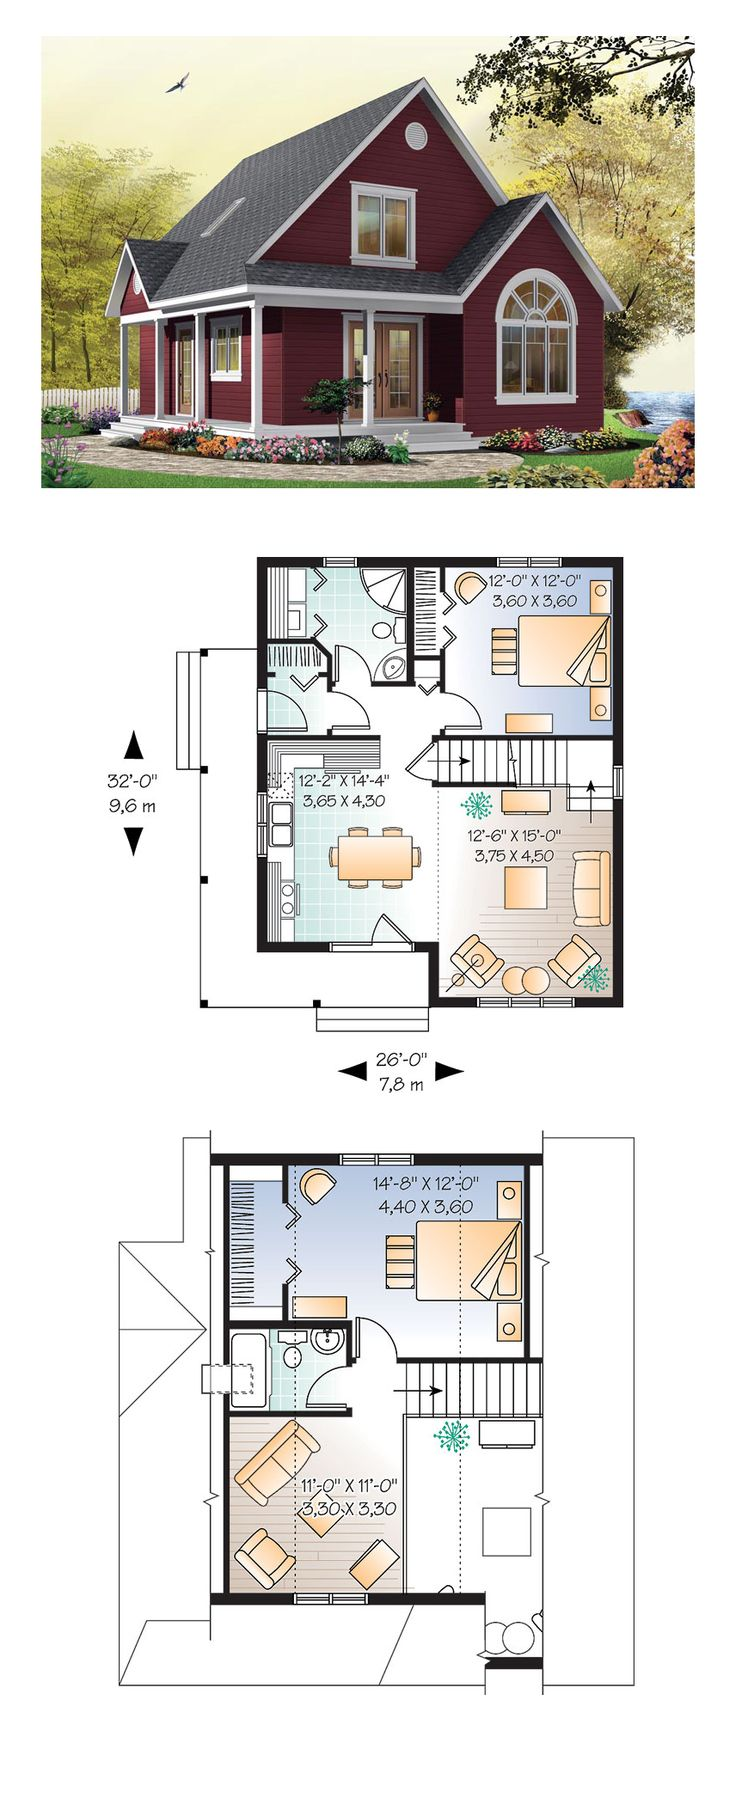 Cottage style cool house plan id total living area 1226 sq 2 bedrooms and 2 bathrooms